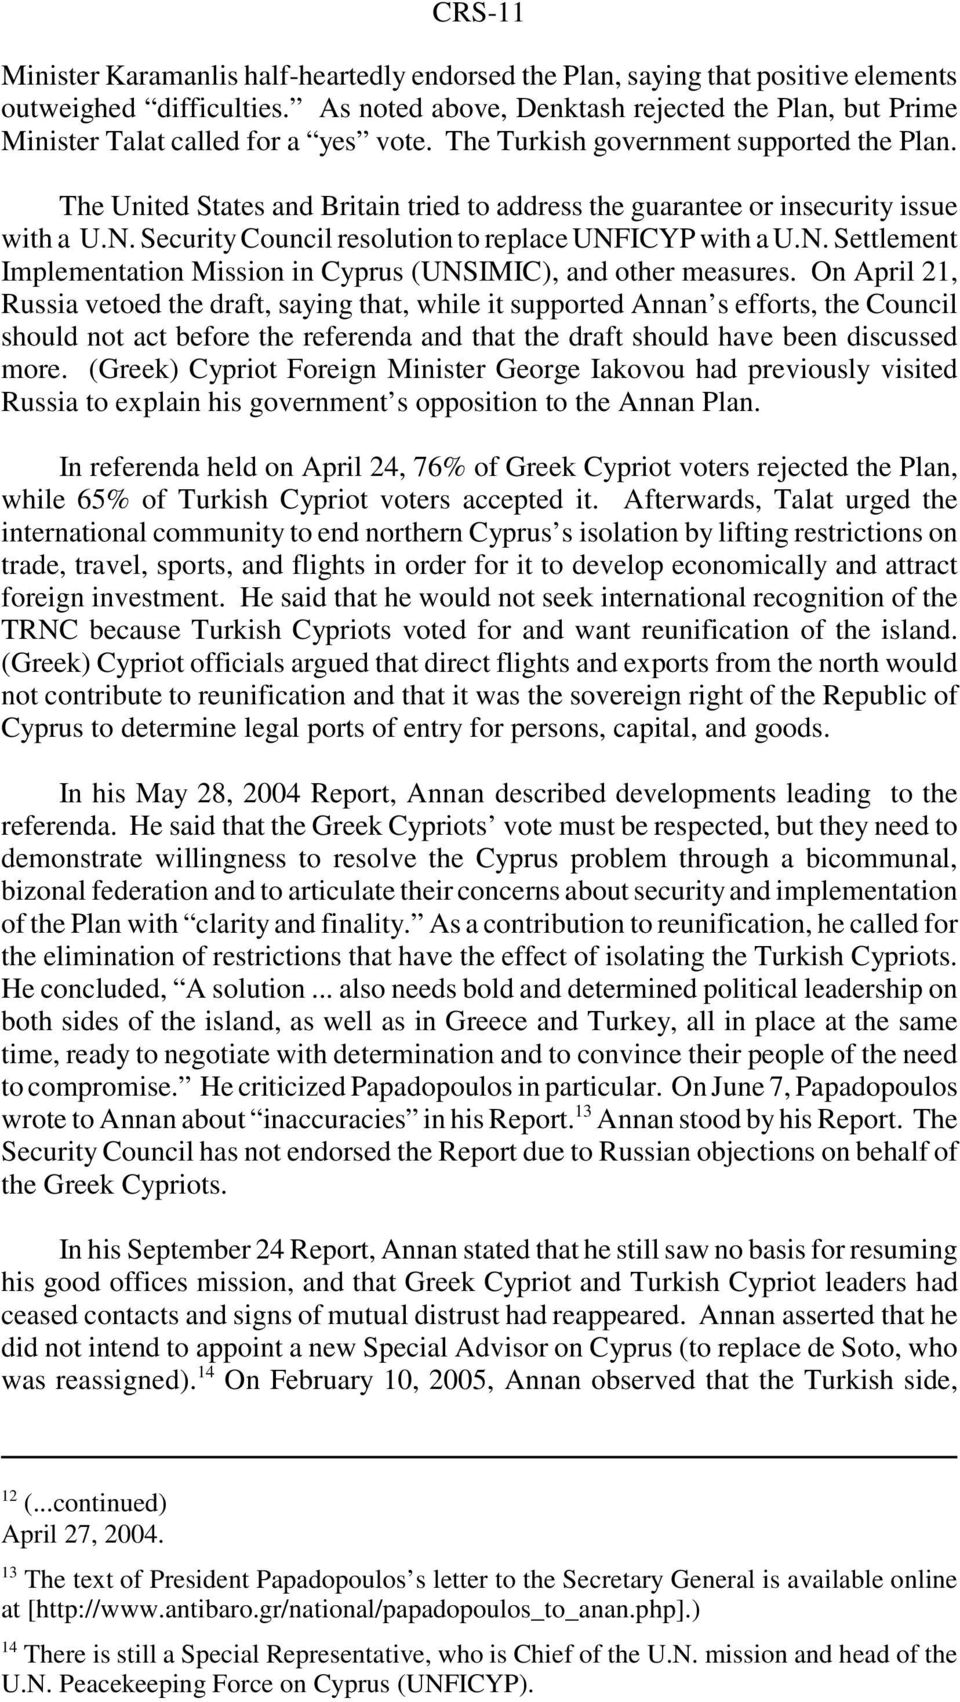 The United States and Britain tried to address the guarantee or insecurity issue with a U.N. Security Council resolution to replace UNFICYP with a U.N. Settlement Implementation Mission in Cyprus (UNSIMIC), and other measures.